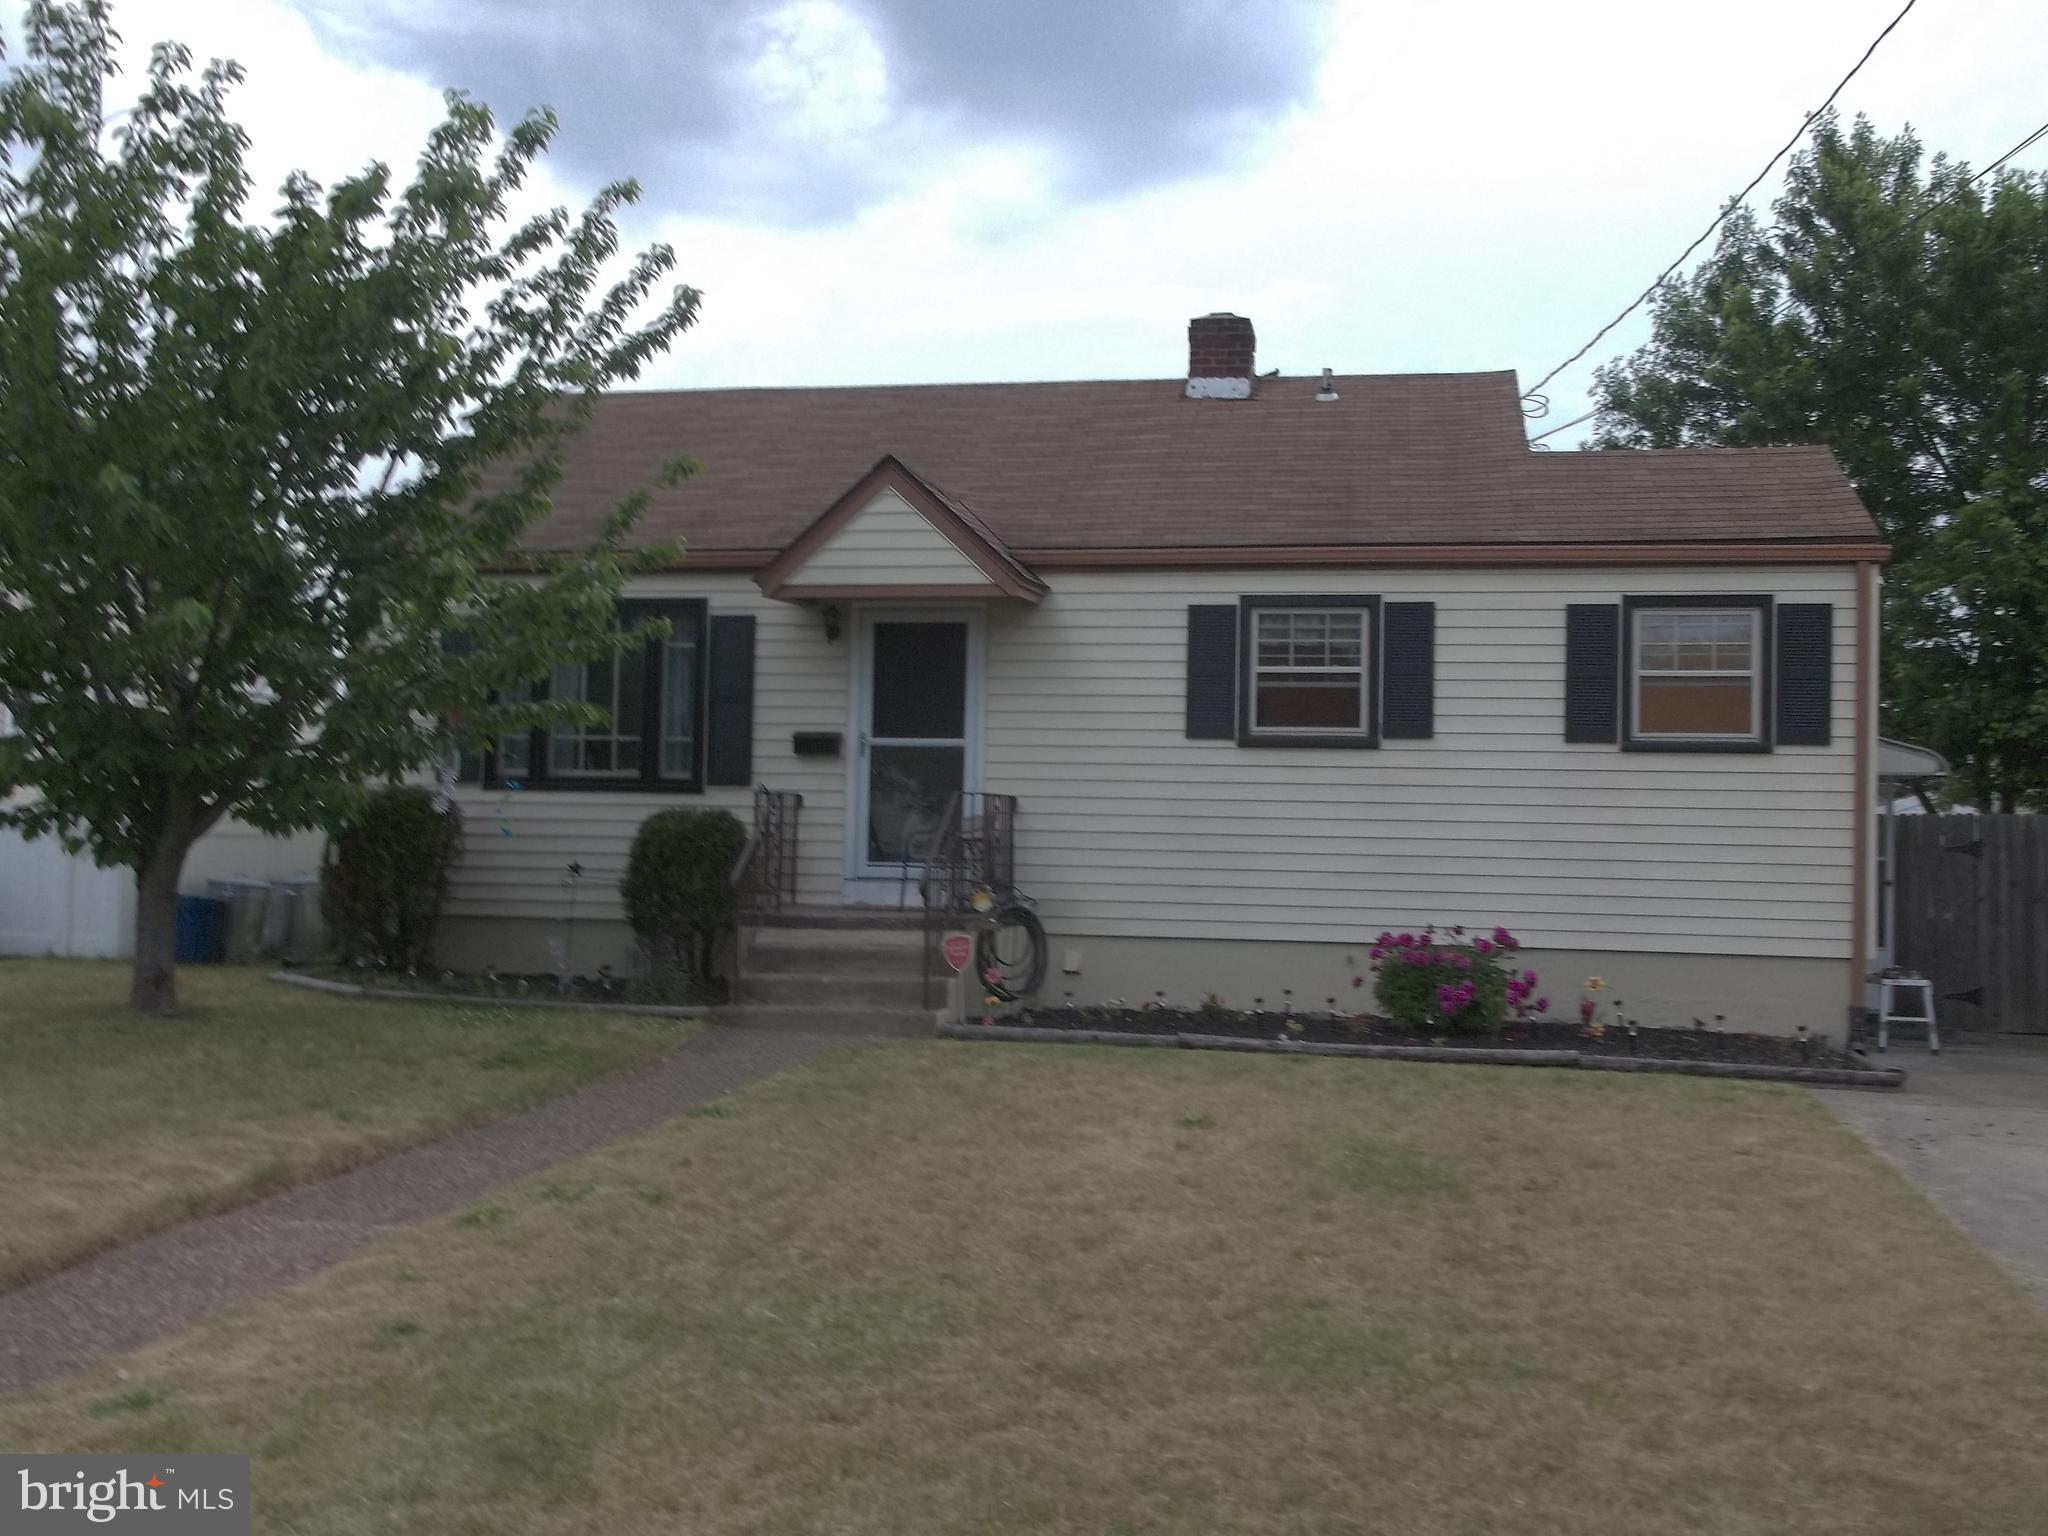 Come See This 2 Bedroom Home In Bellmawr Boro, Featuring A Large Living Room, Eat-In Kitchen, Full Basement With Finishing Possibilities, And A Fenced Backyard, Ideal For Summertime Fun and Entertaining Gatherings! Seller Is Replacing The HVAC System With A New Furnace And Central Air Conditioning Units. Make Your Showing Appointment To See This Nice Home.